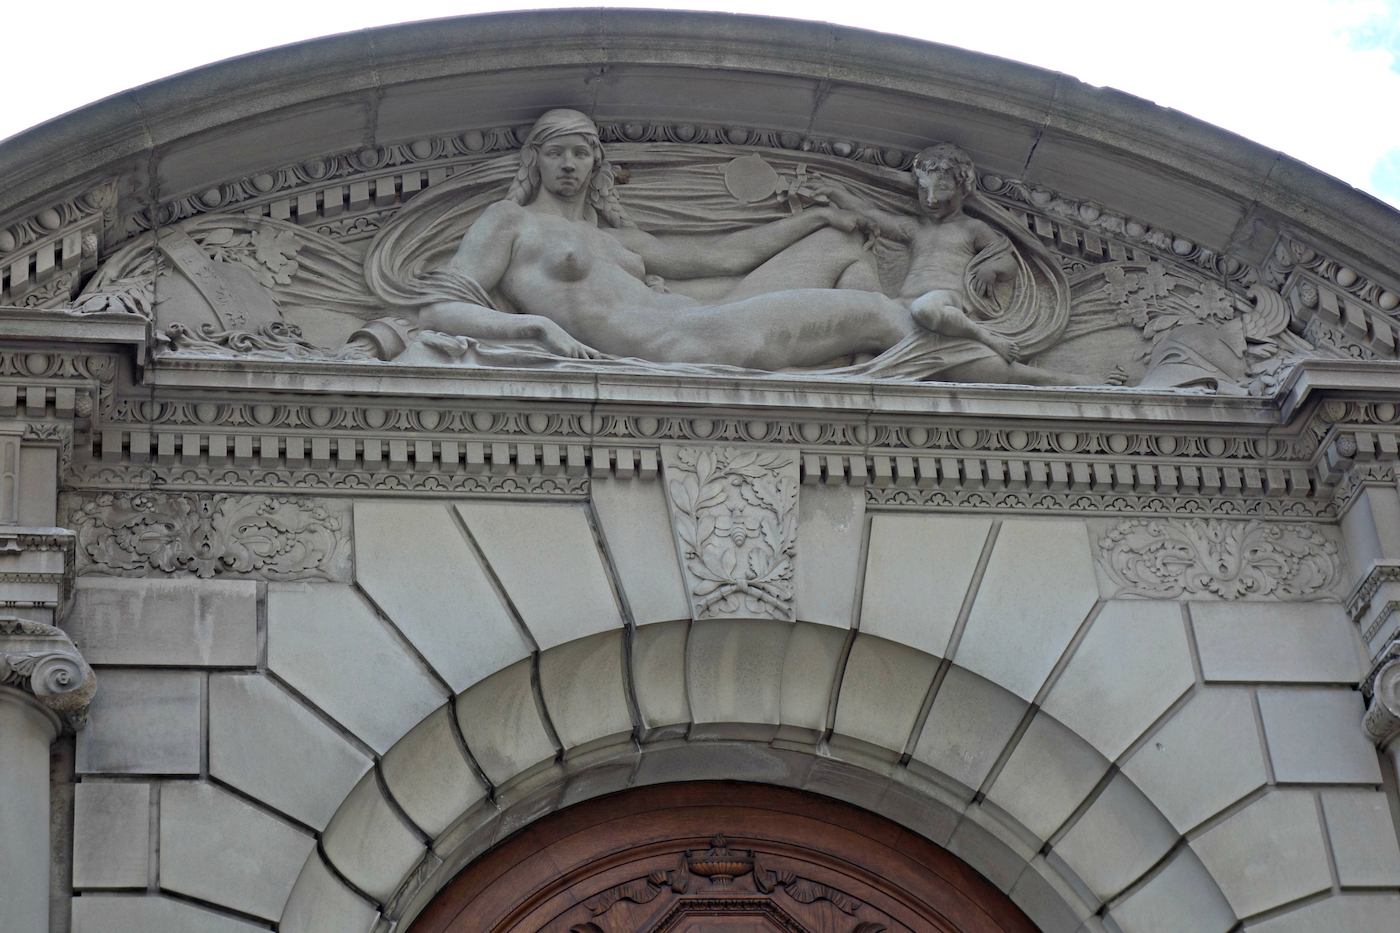 Audrey Munson sculpted by Sherry Edmundson Fry on the pediment of the Frick Collection (photo by the author for Hyperallergic)